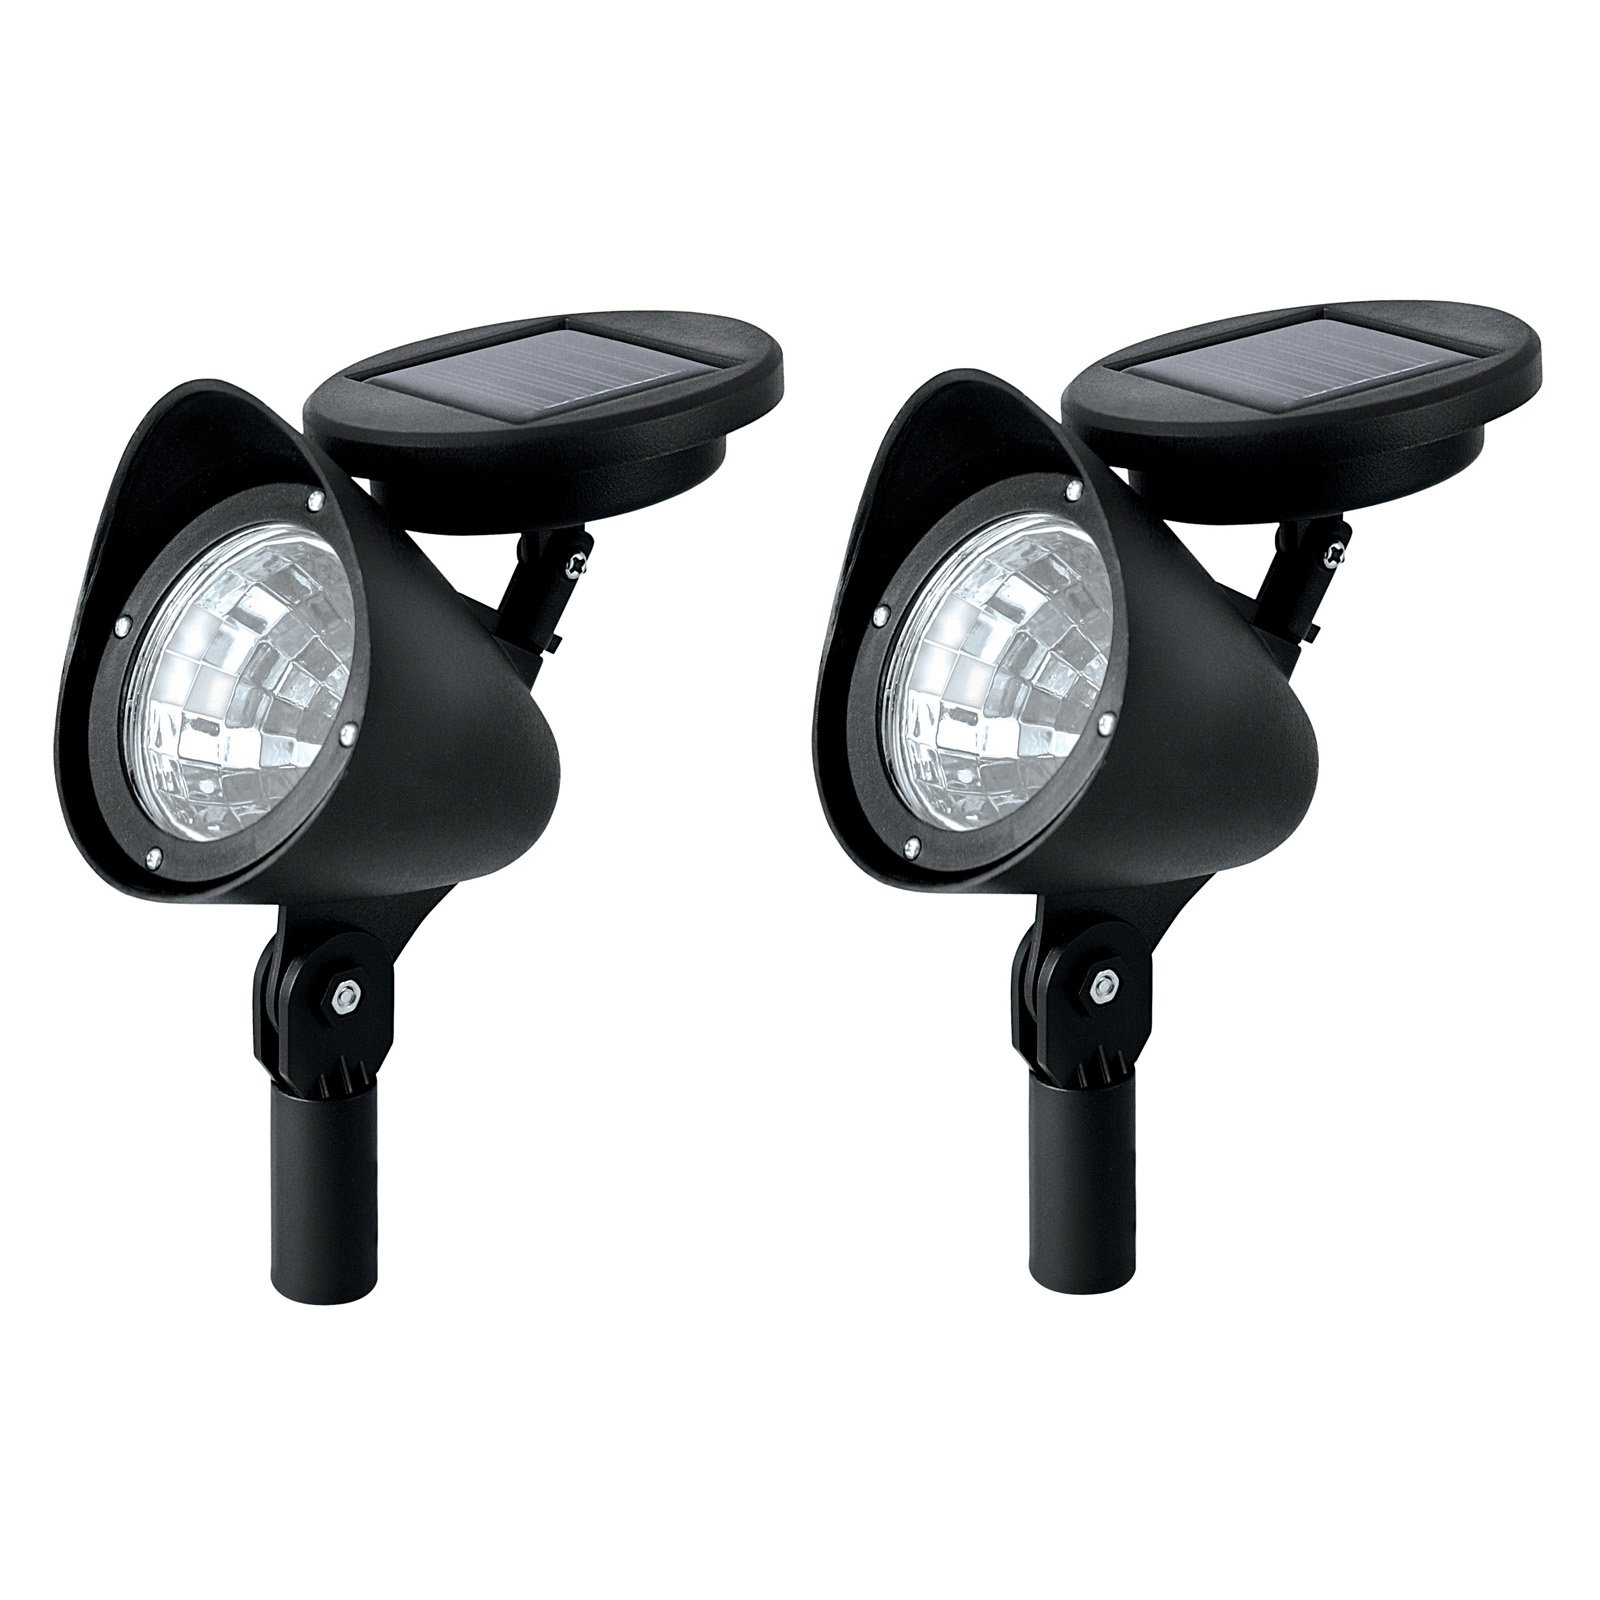 Paradise Lighting Solar LED Plastic Spotlight, 2 Pack by Northern International Inc.